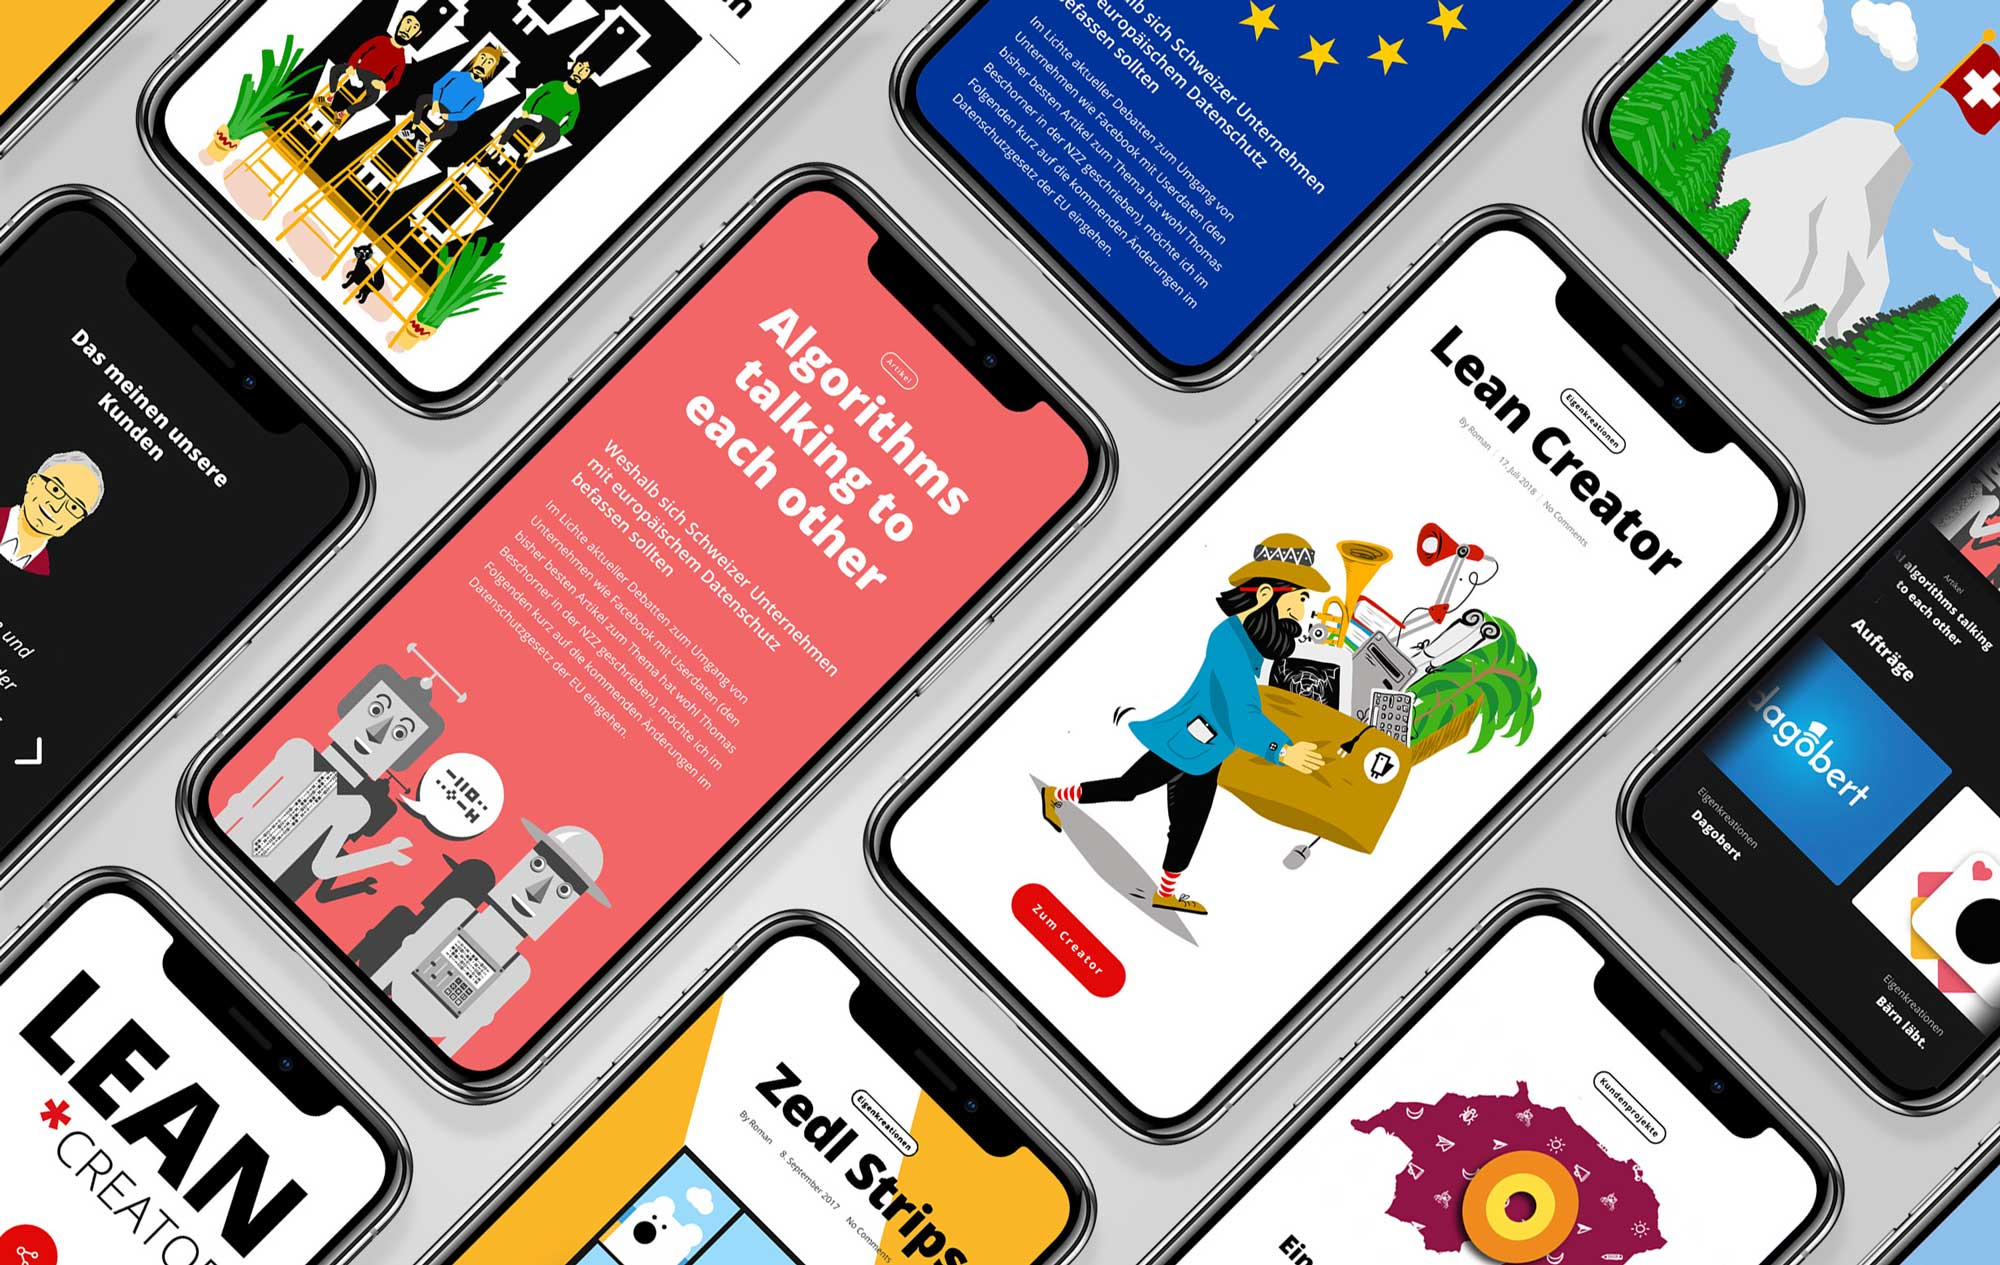 Responsive web design and illustrations for IT companies Switzerland by Namo Agency for Branding & Web Design Bern